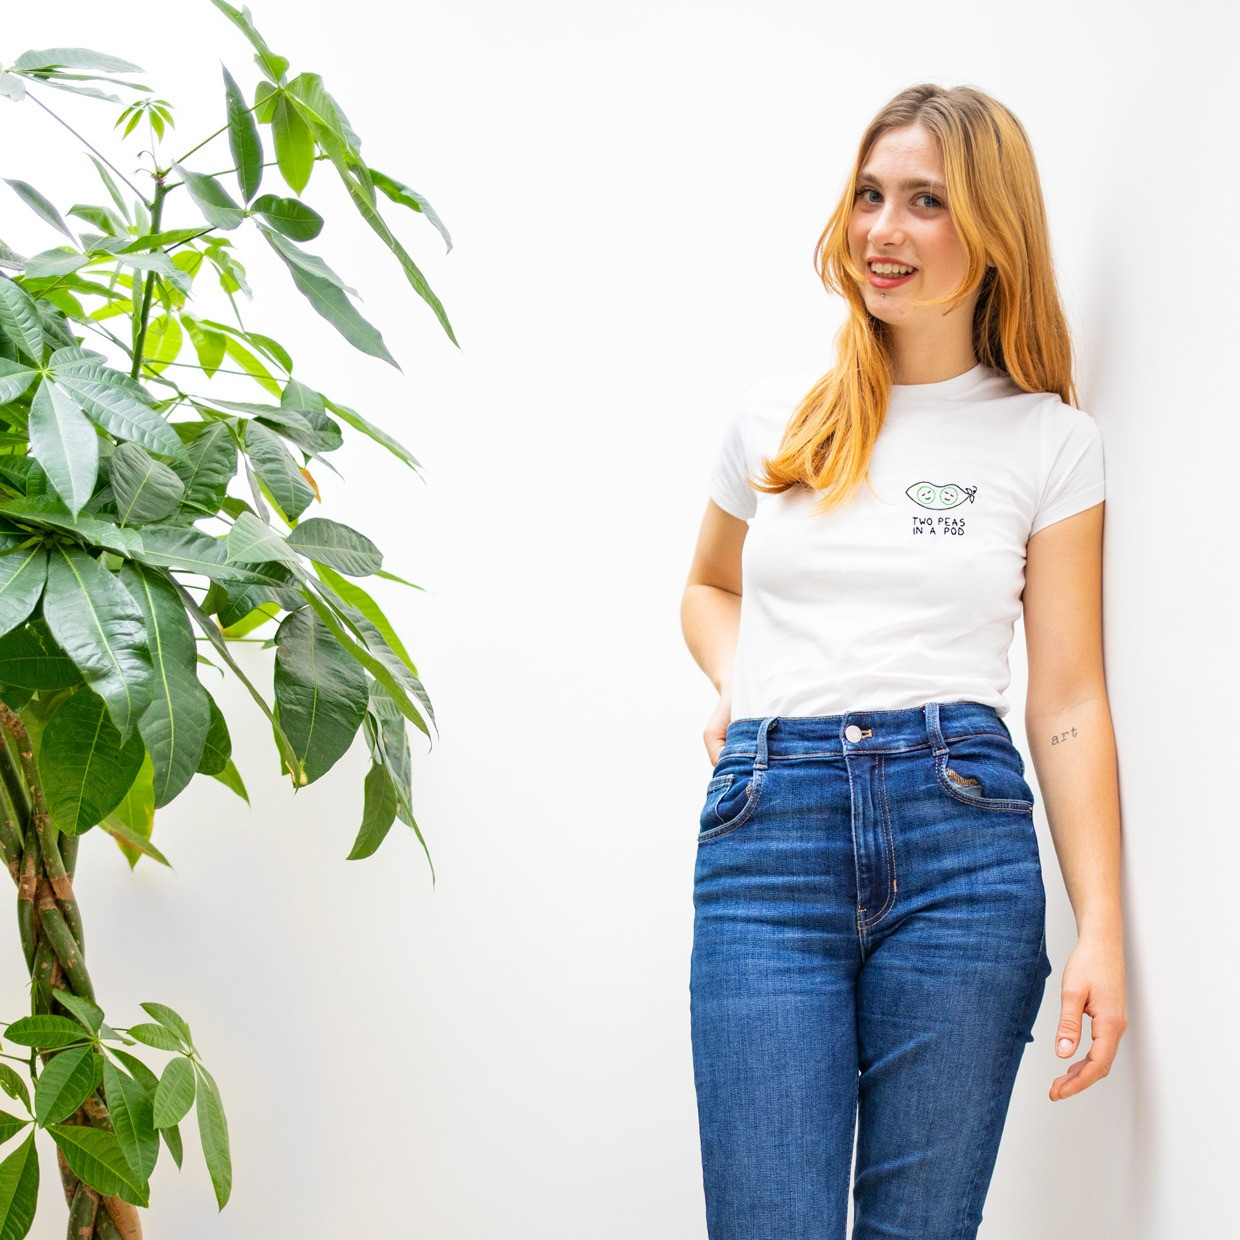 The TWO PEAS IN A POD slim fit tee - melidé x Giulia Valentina